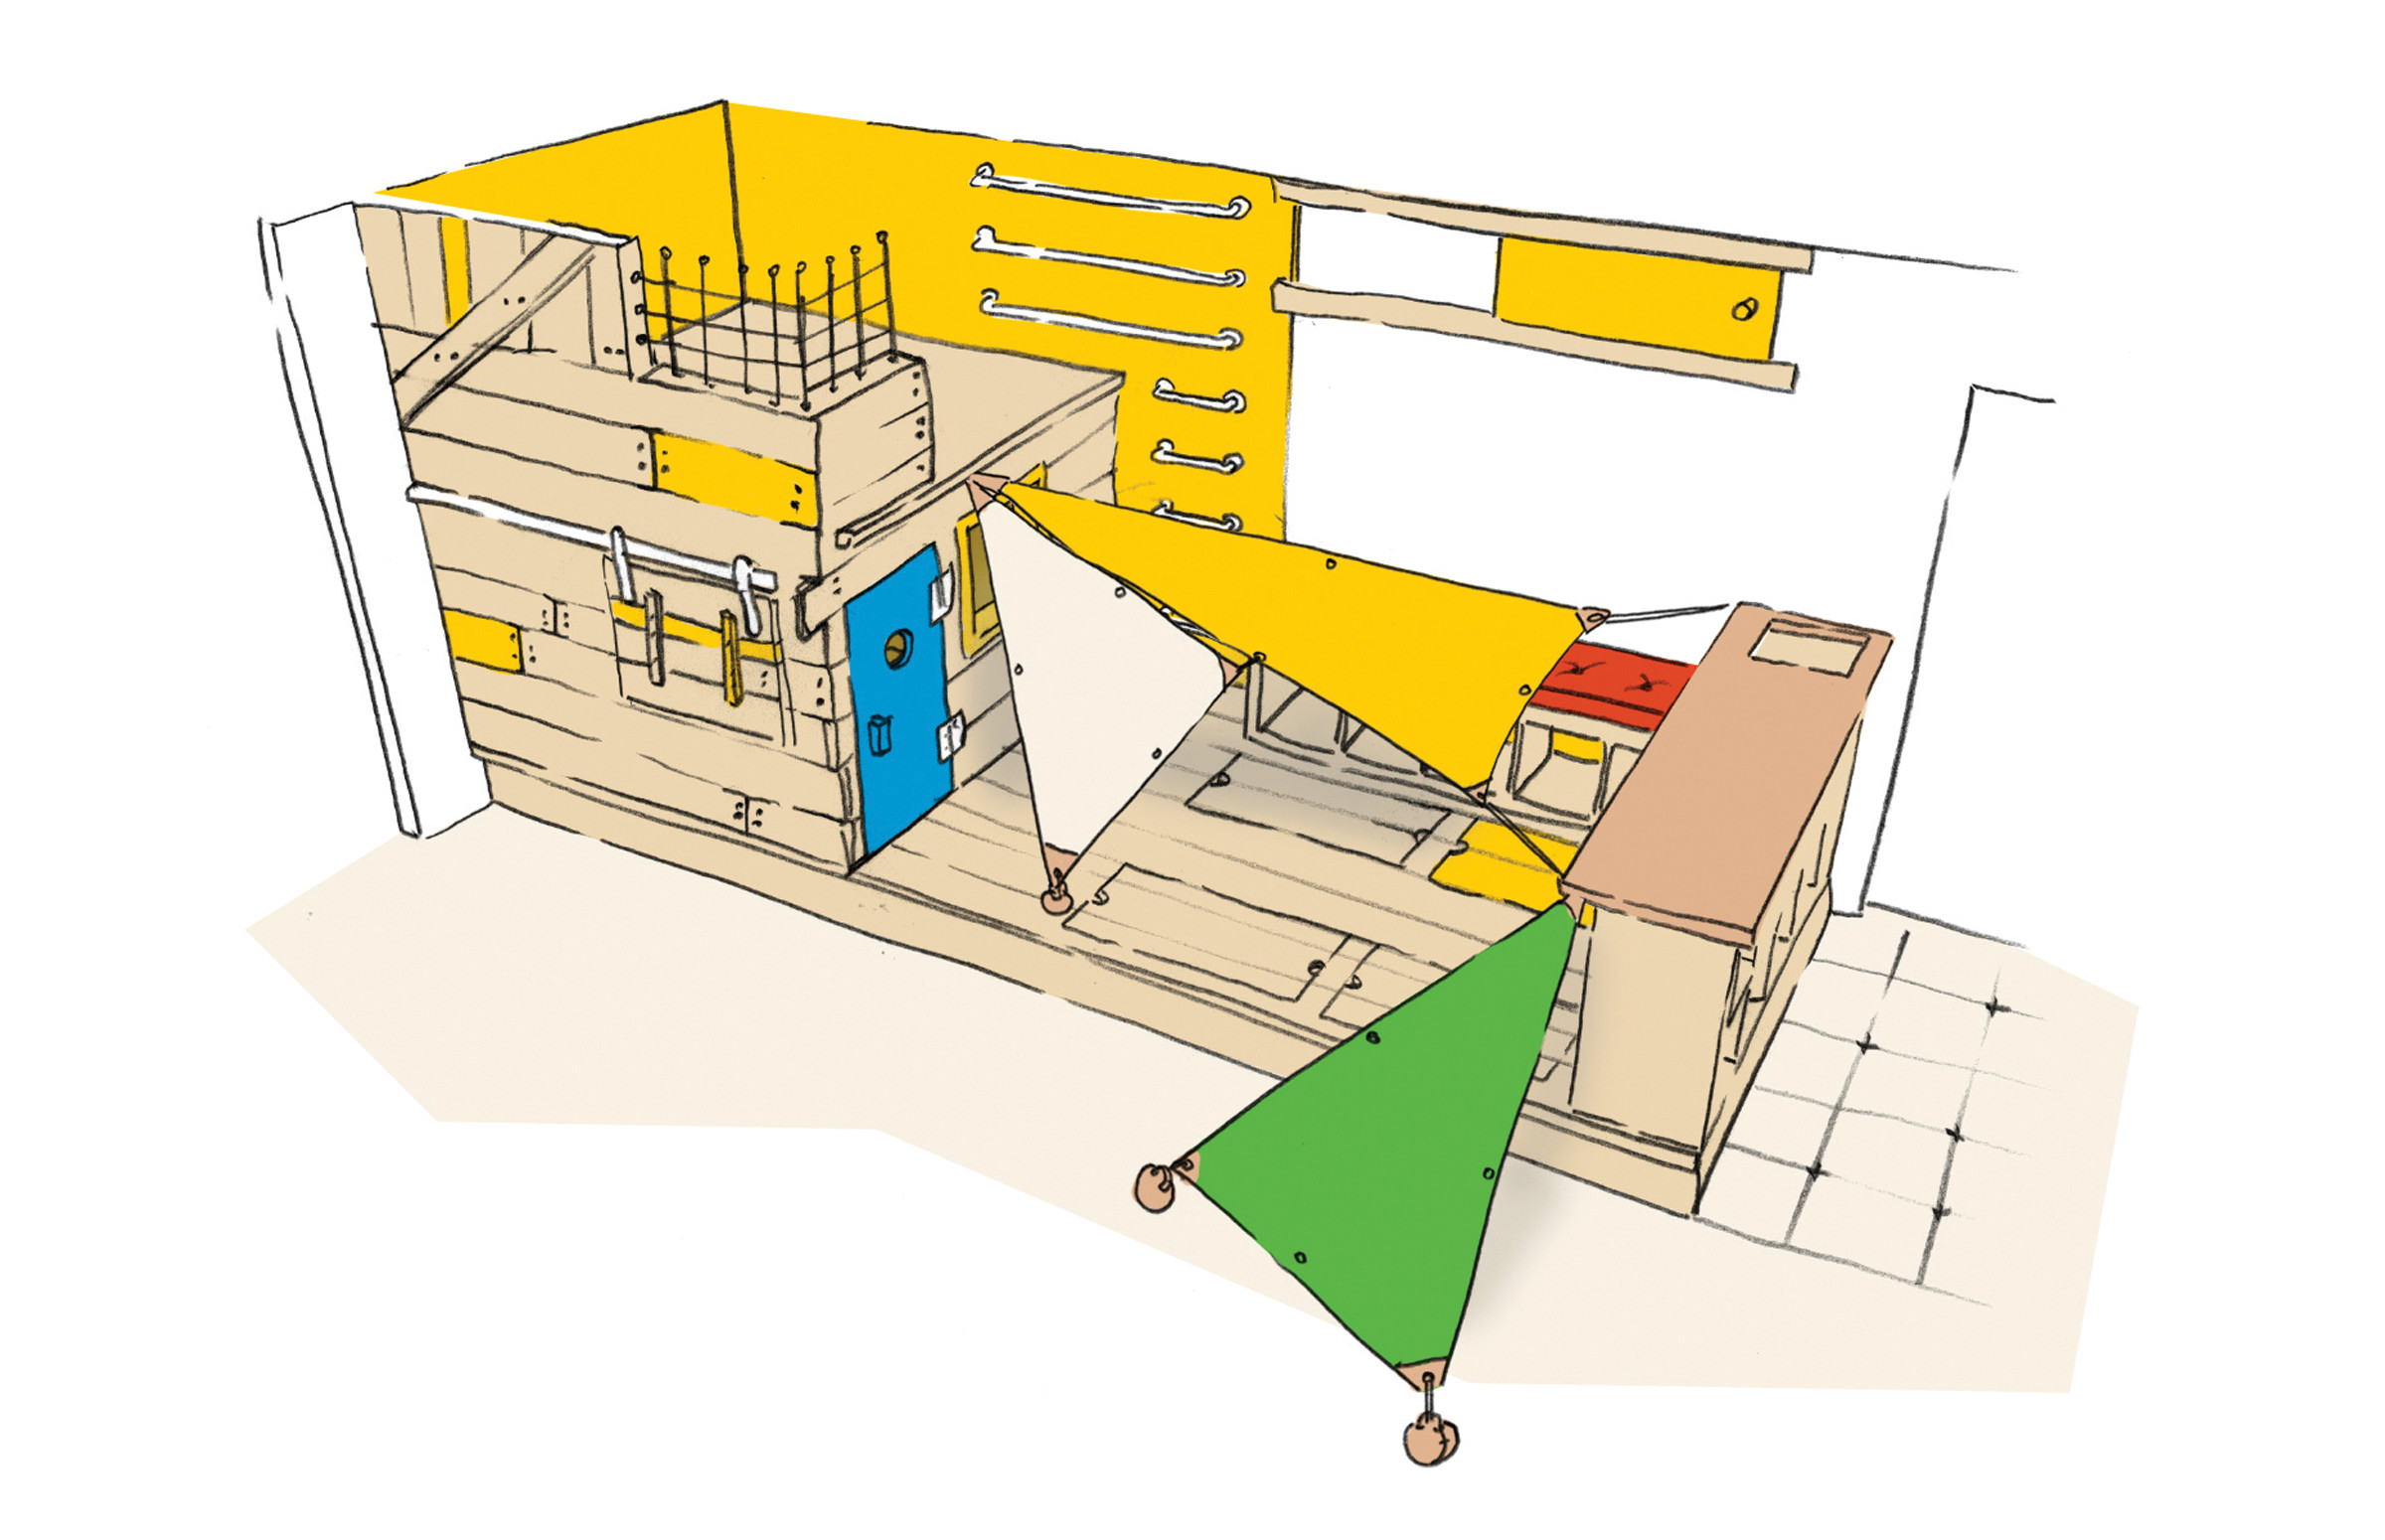 kids-room-clubhouse-sketch-thinkterior.jpg